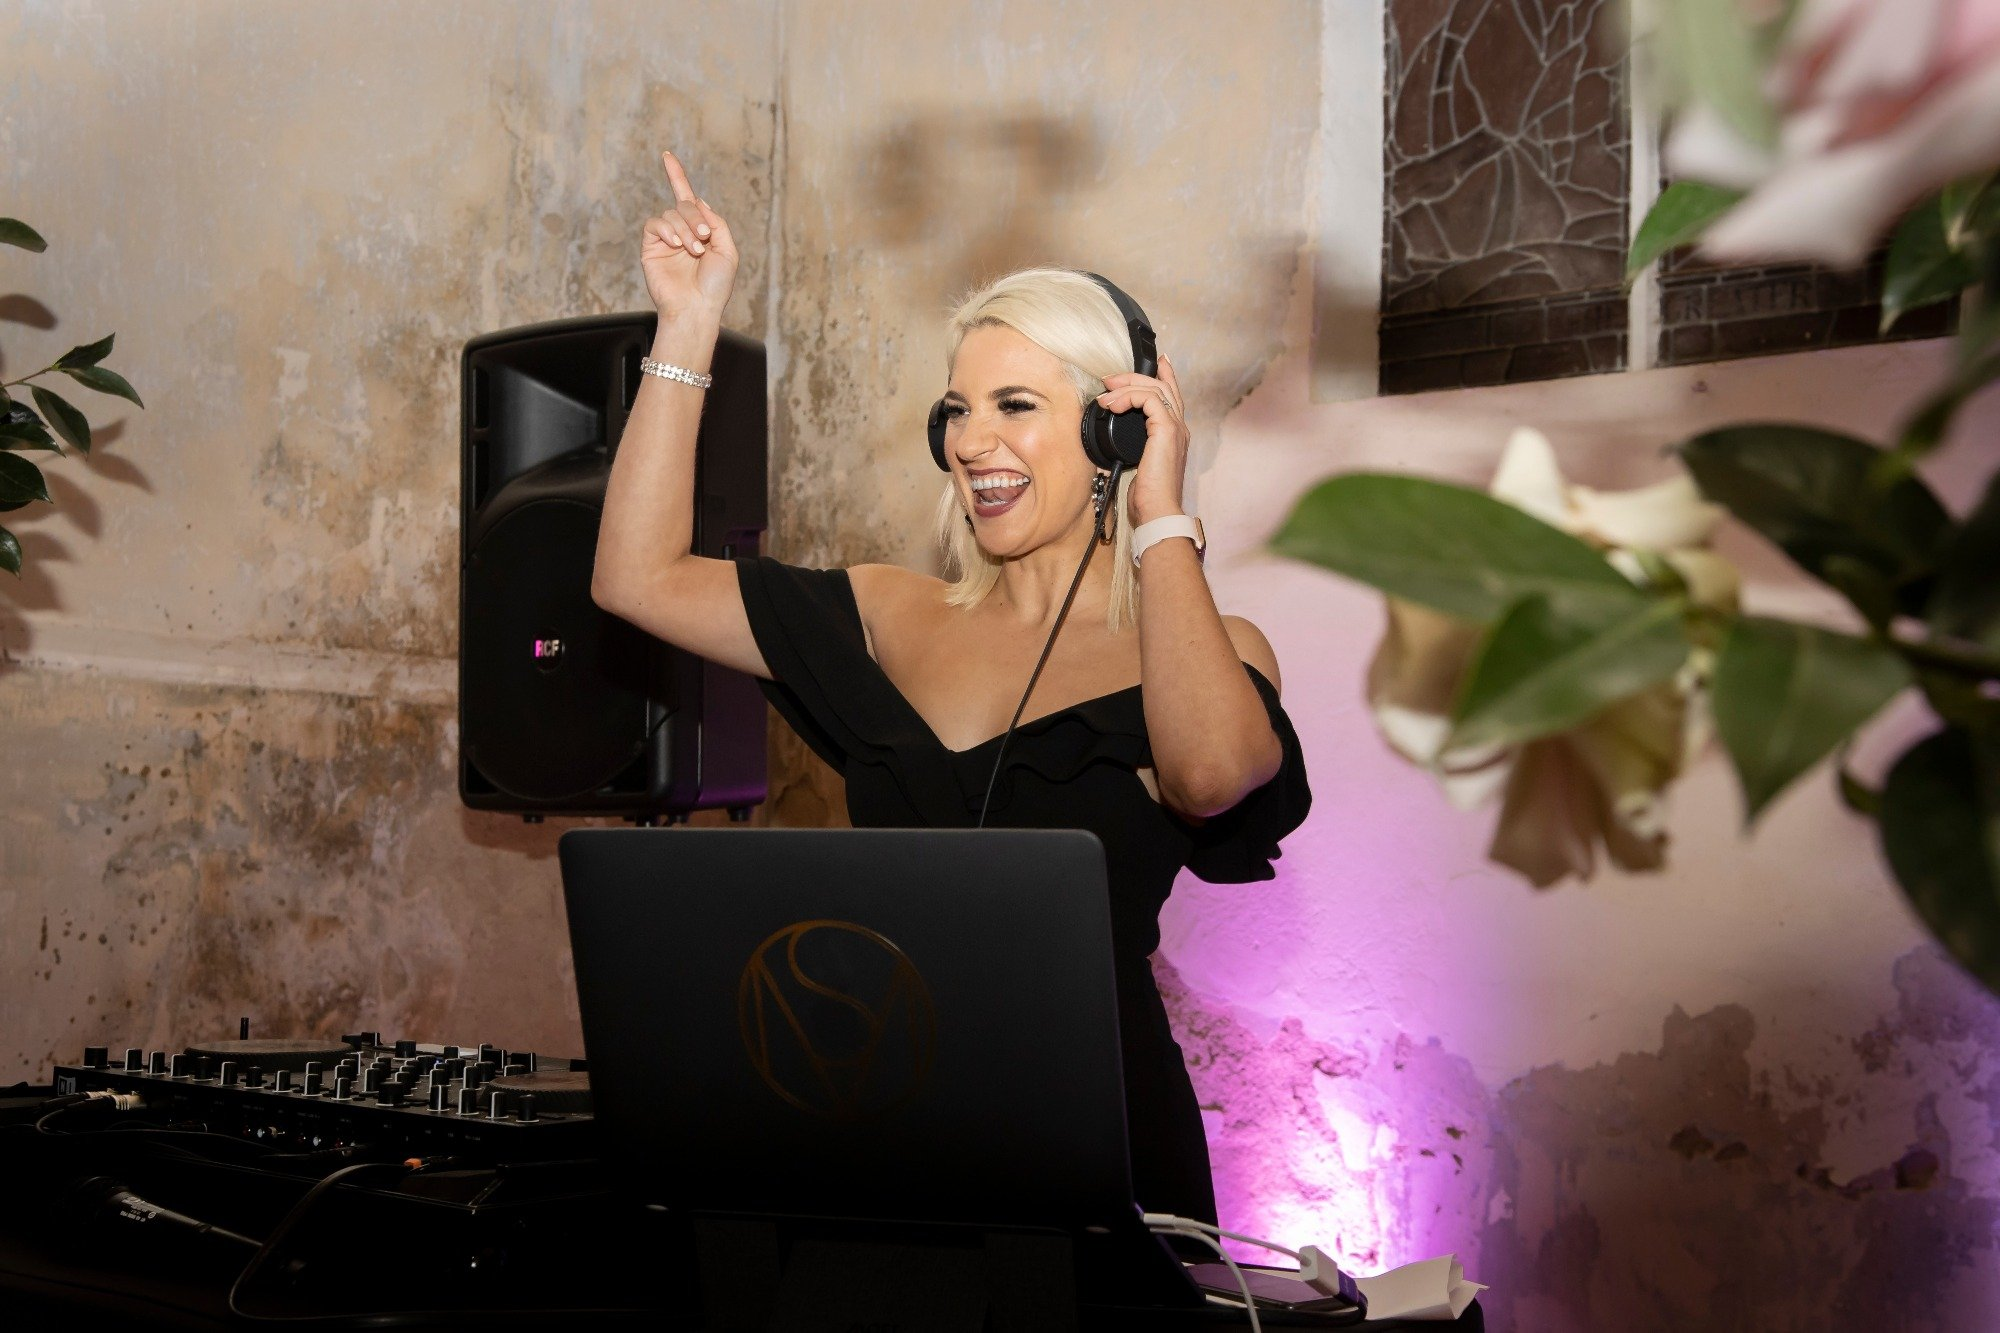 Melbourne DJ Plays Popular Songs At Wedding Reception